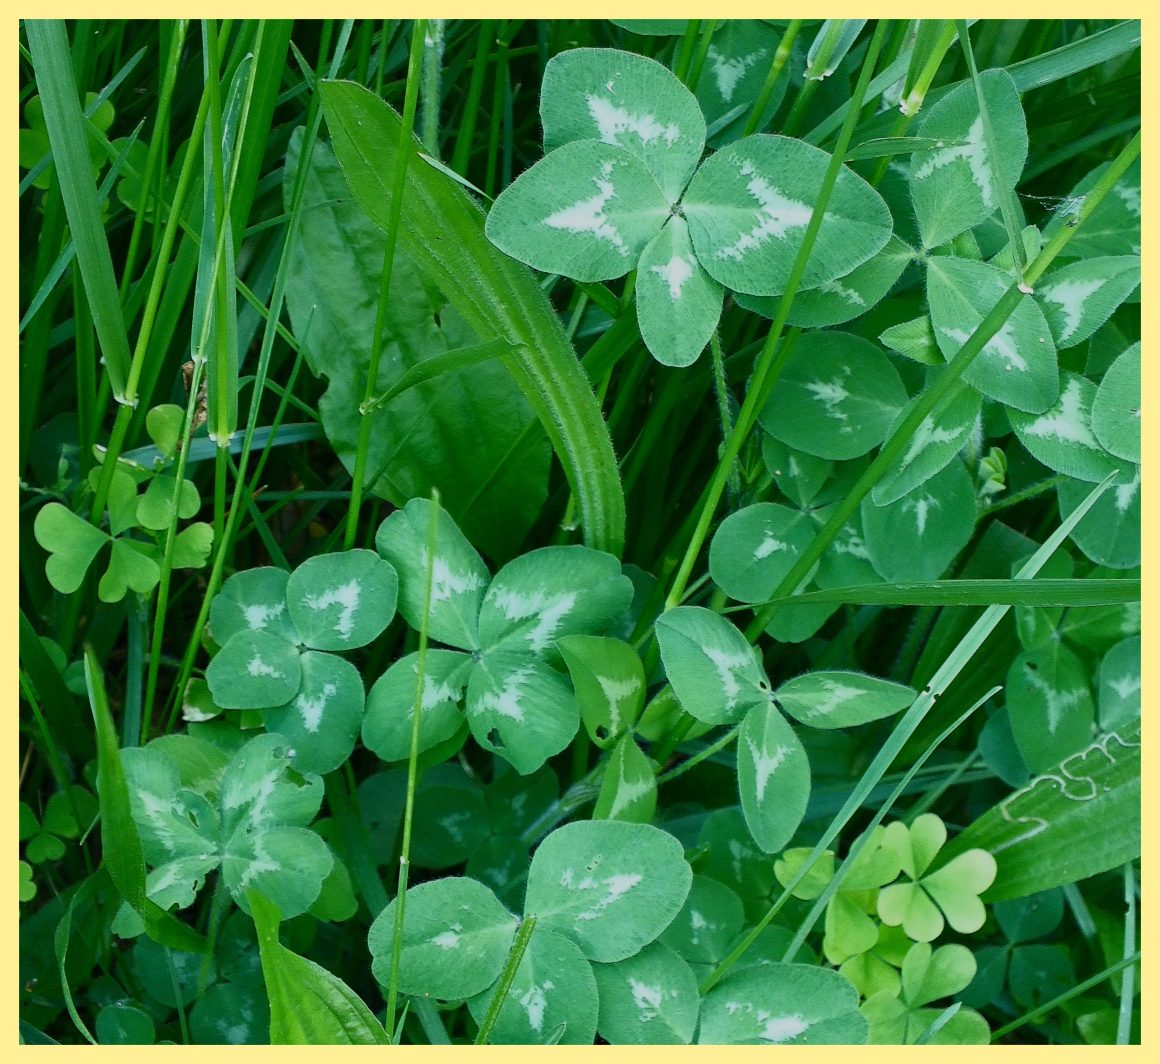 Be a 4-leaf clover (1). Photo by Thomas Peace c. 2015